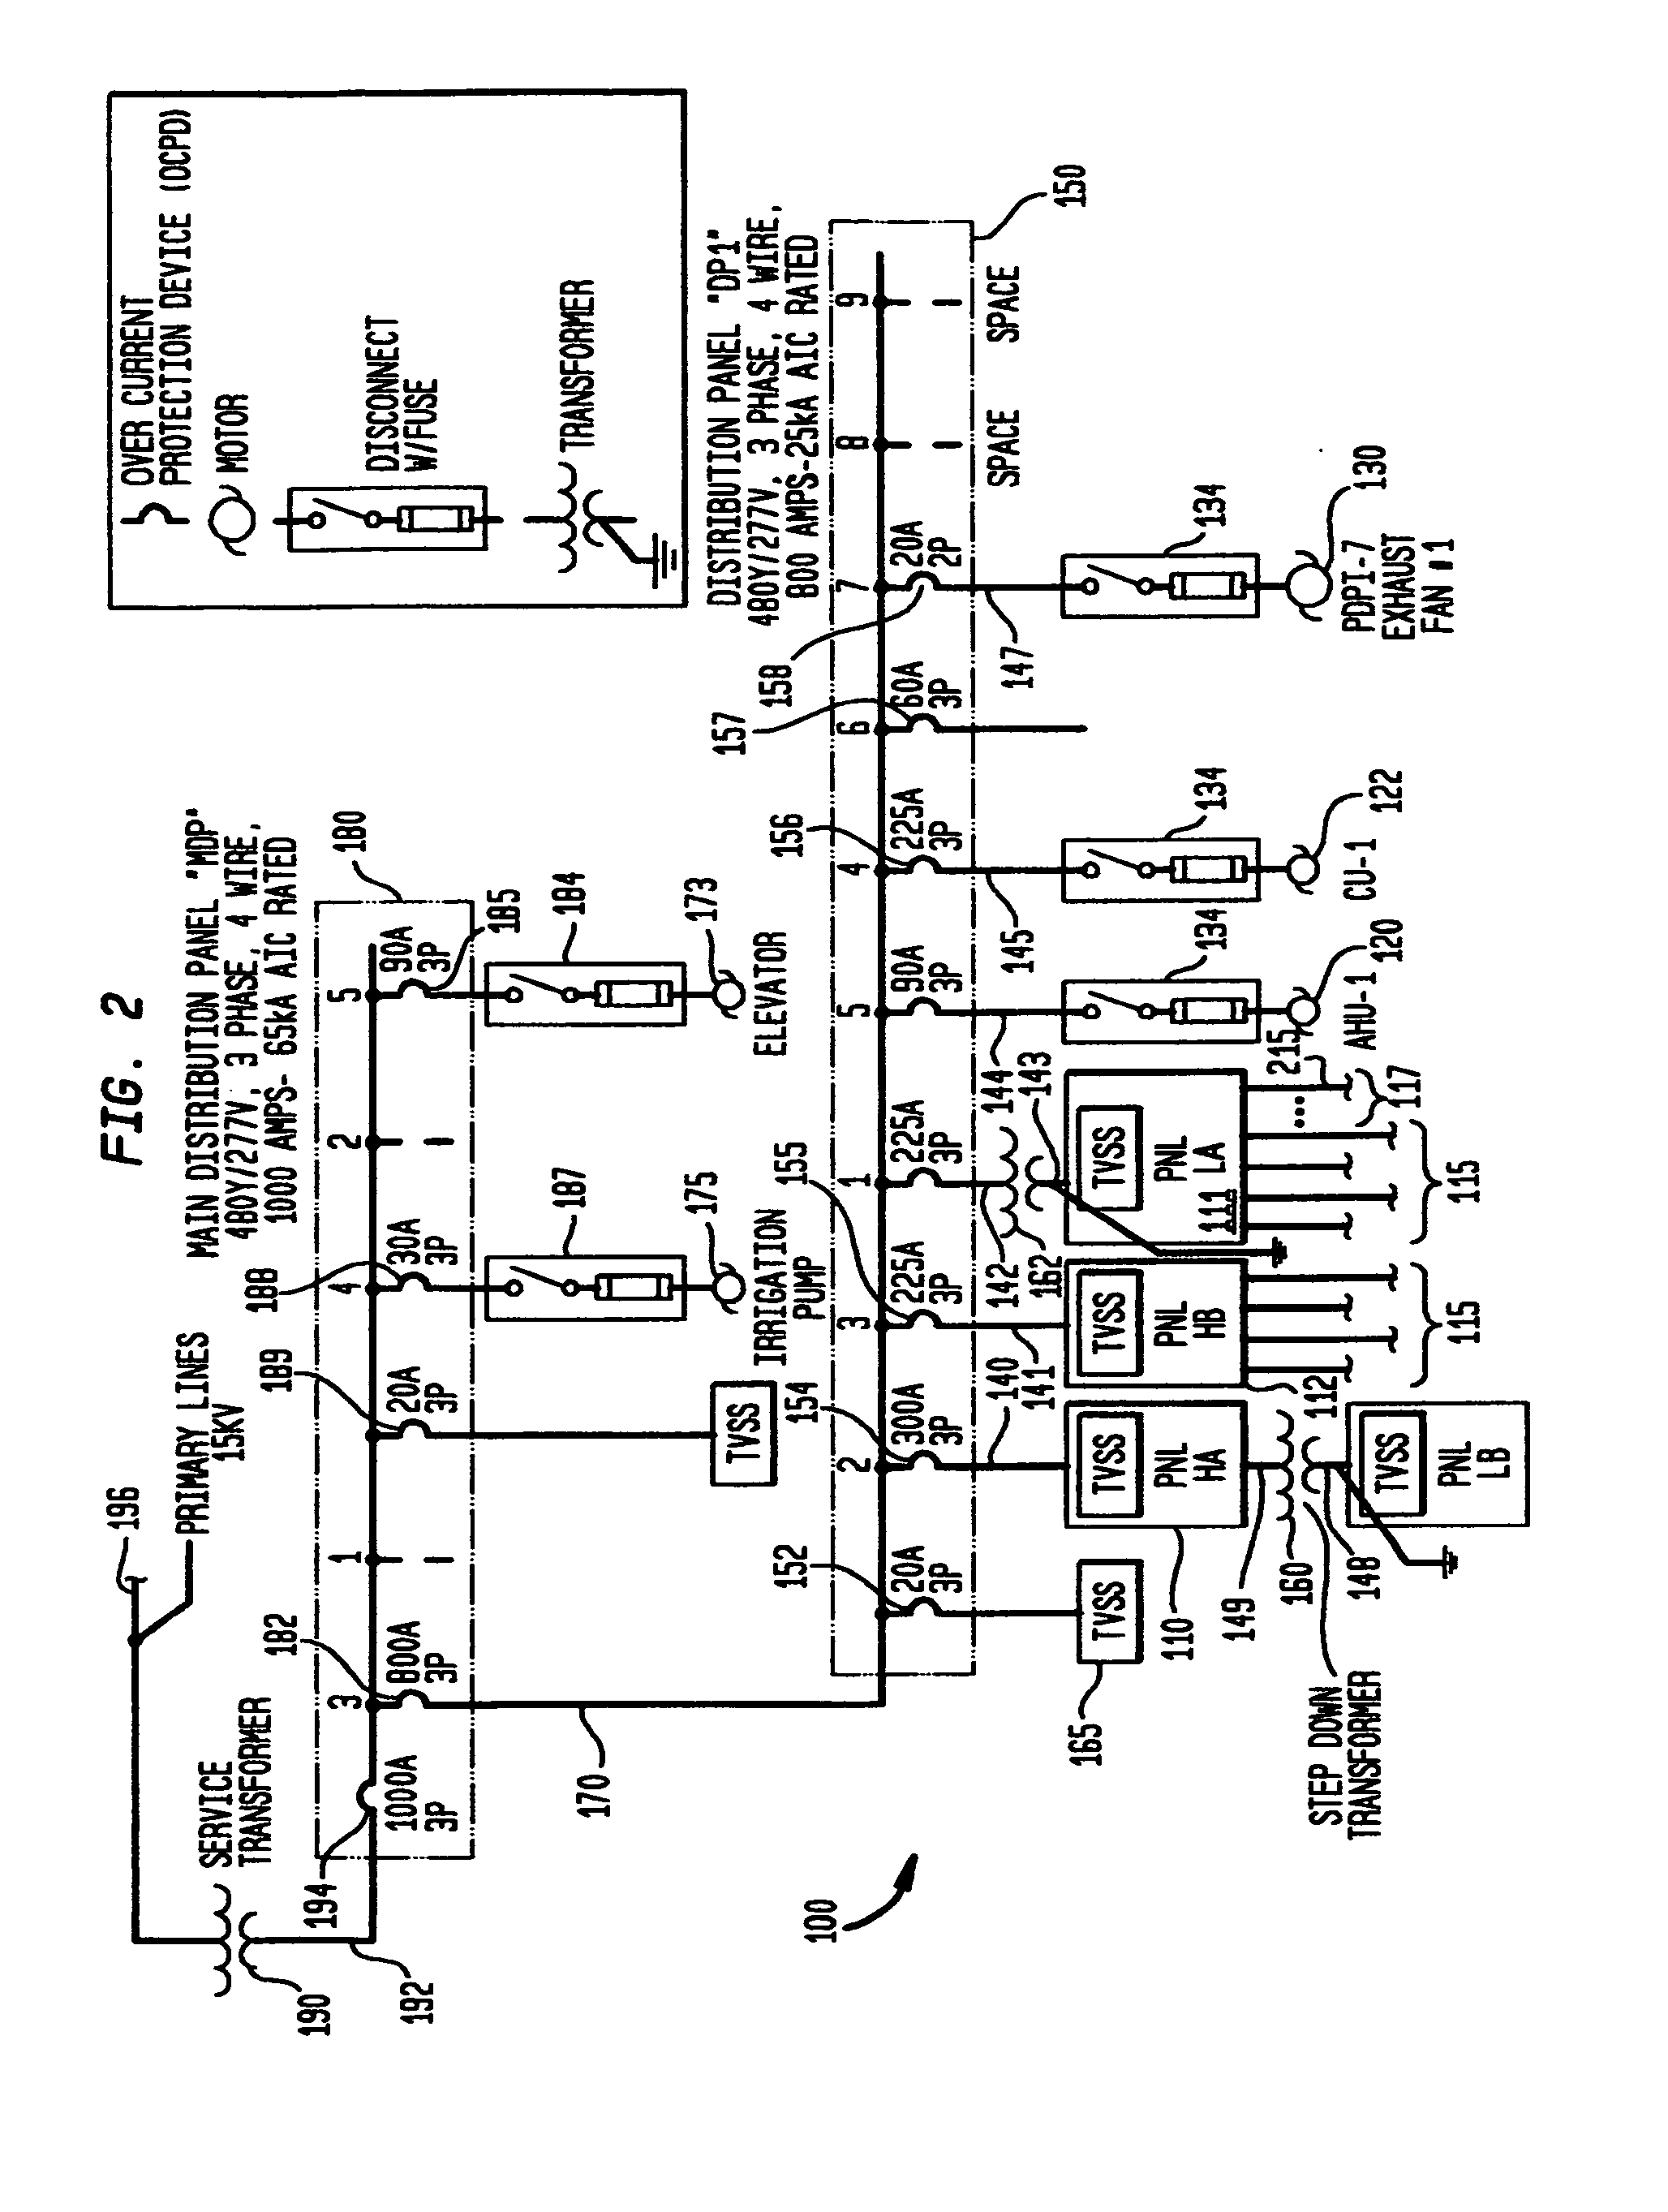 600 Amp Service Wiring Diagram Diagrams 3 Phase Meter Socket Panel Engine And Overhead Parallel